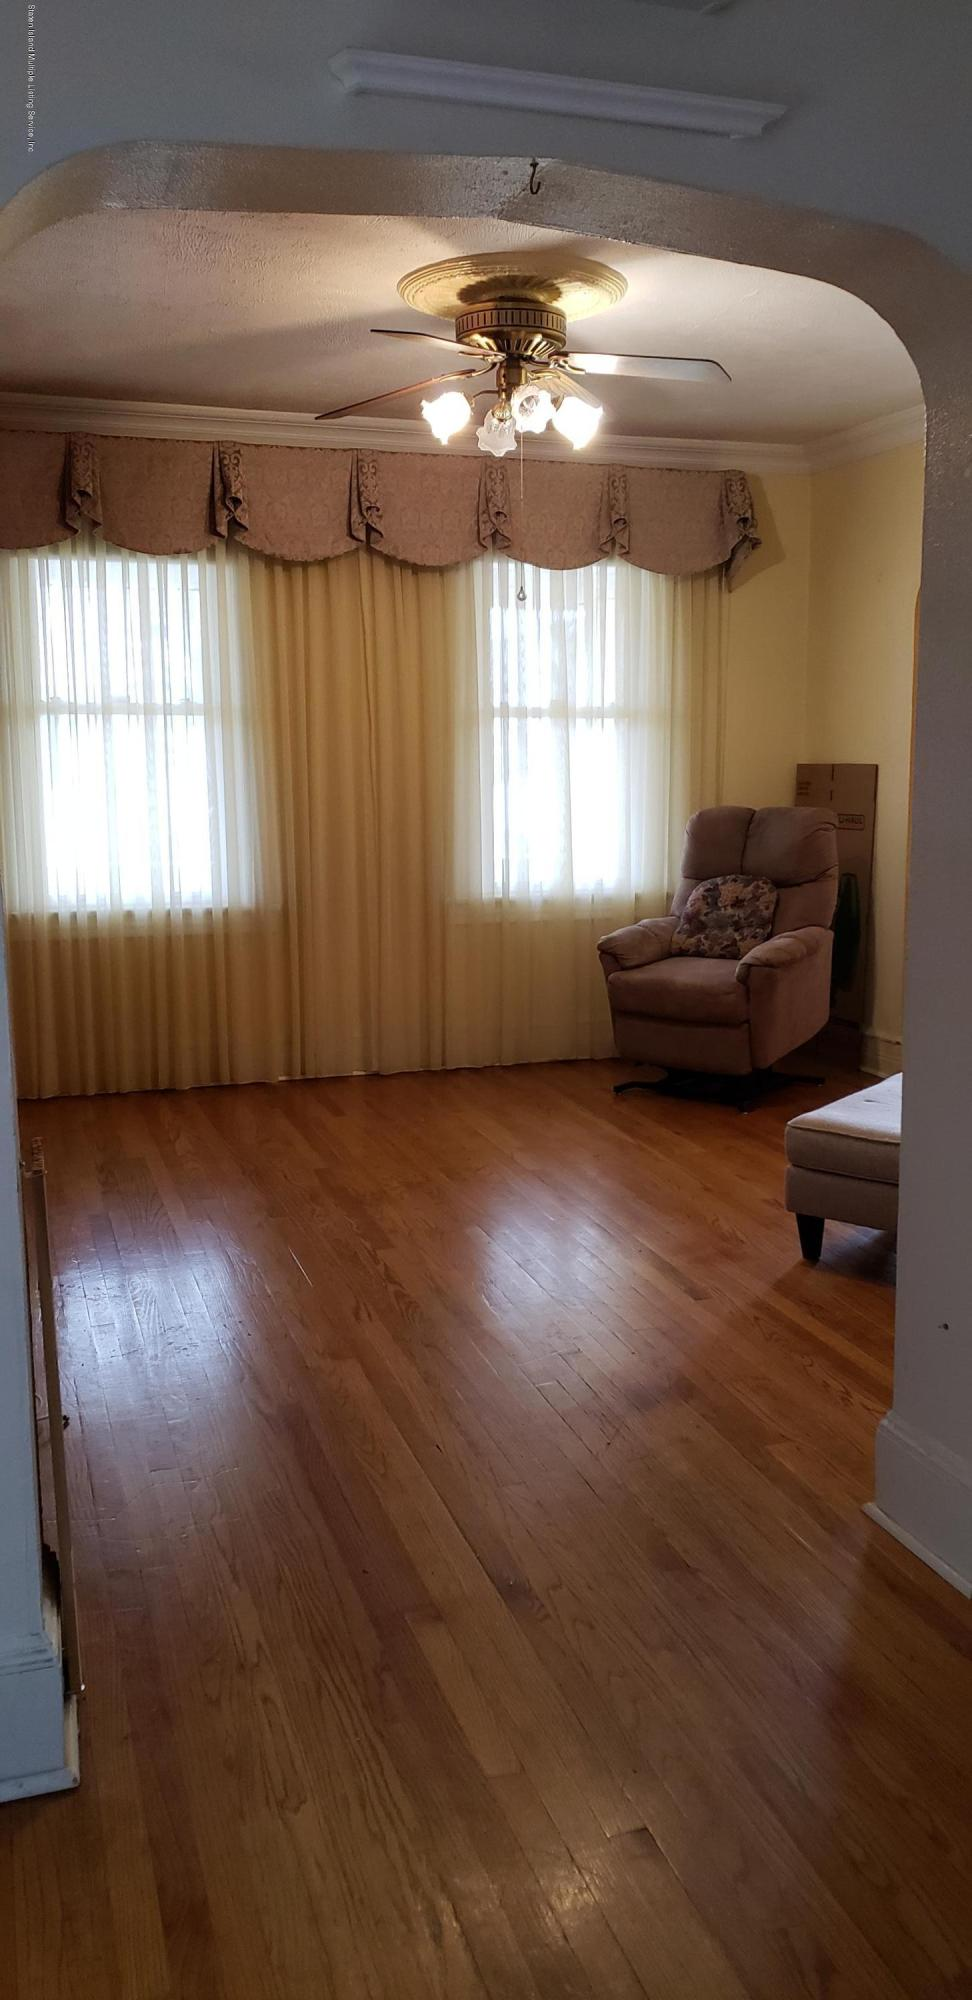 Single Family - Detached 83 Evelyn Place  Staten Island, NY 10305, MLS-1125485-7